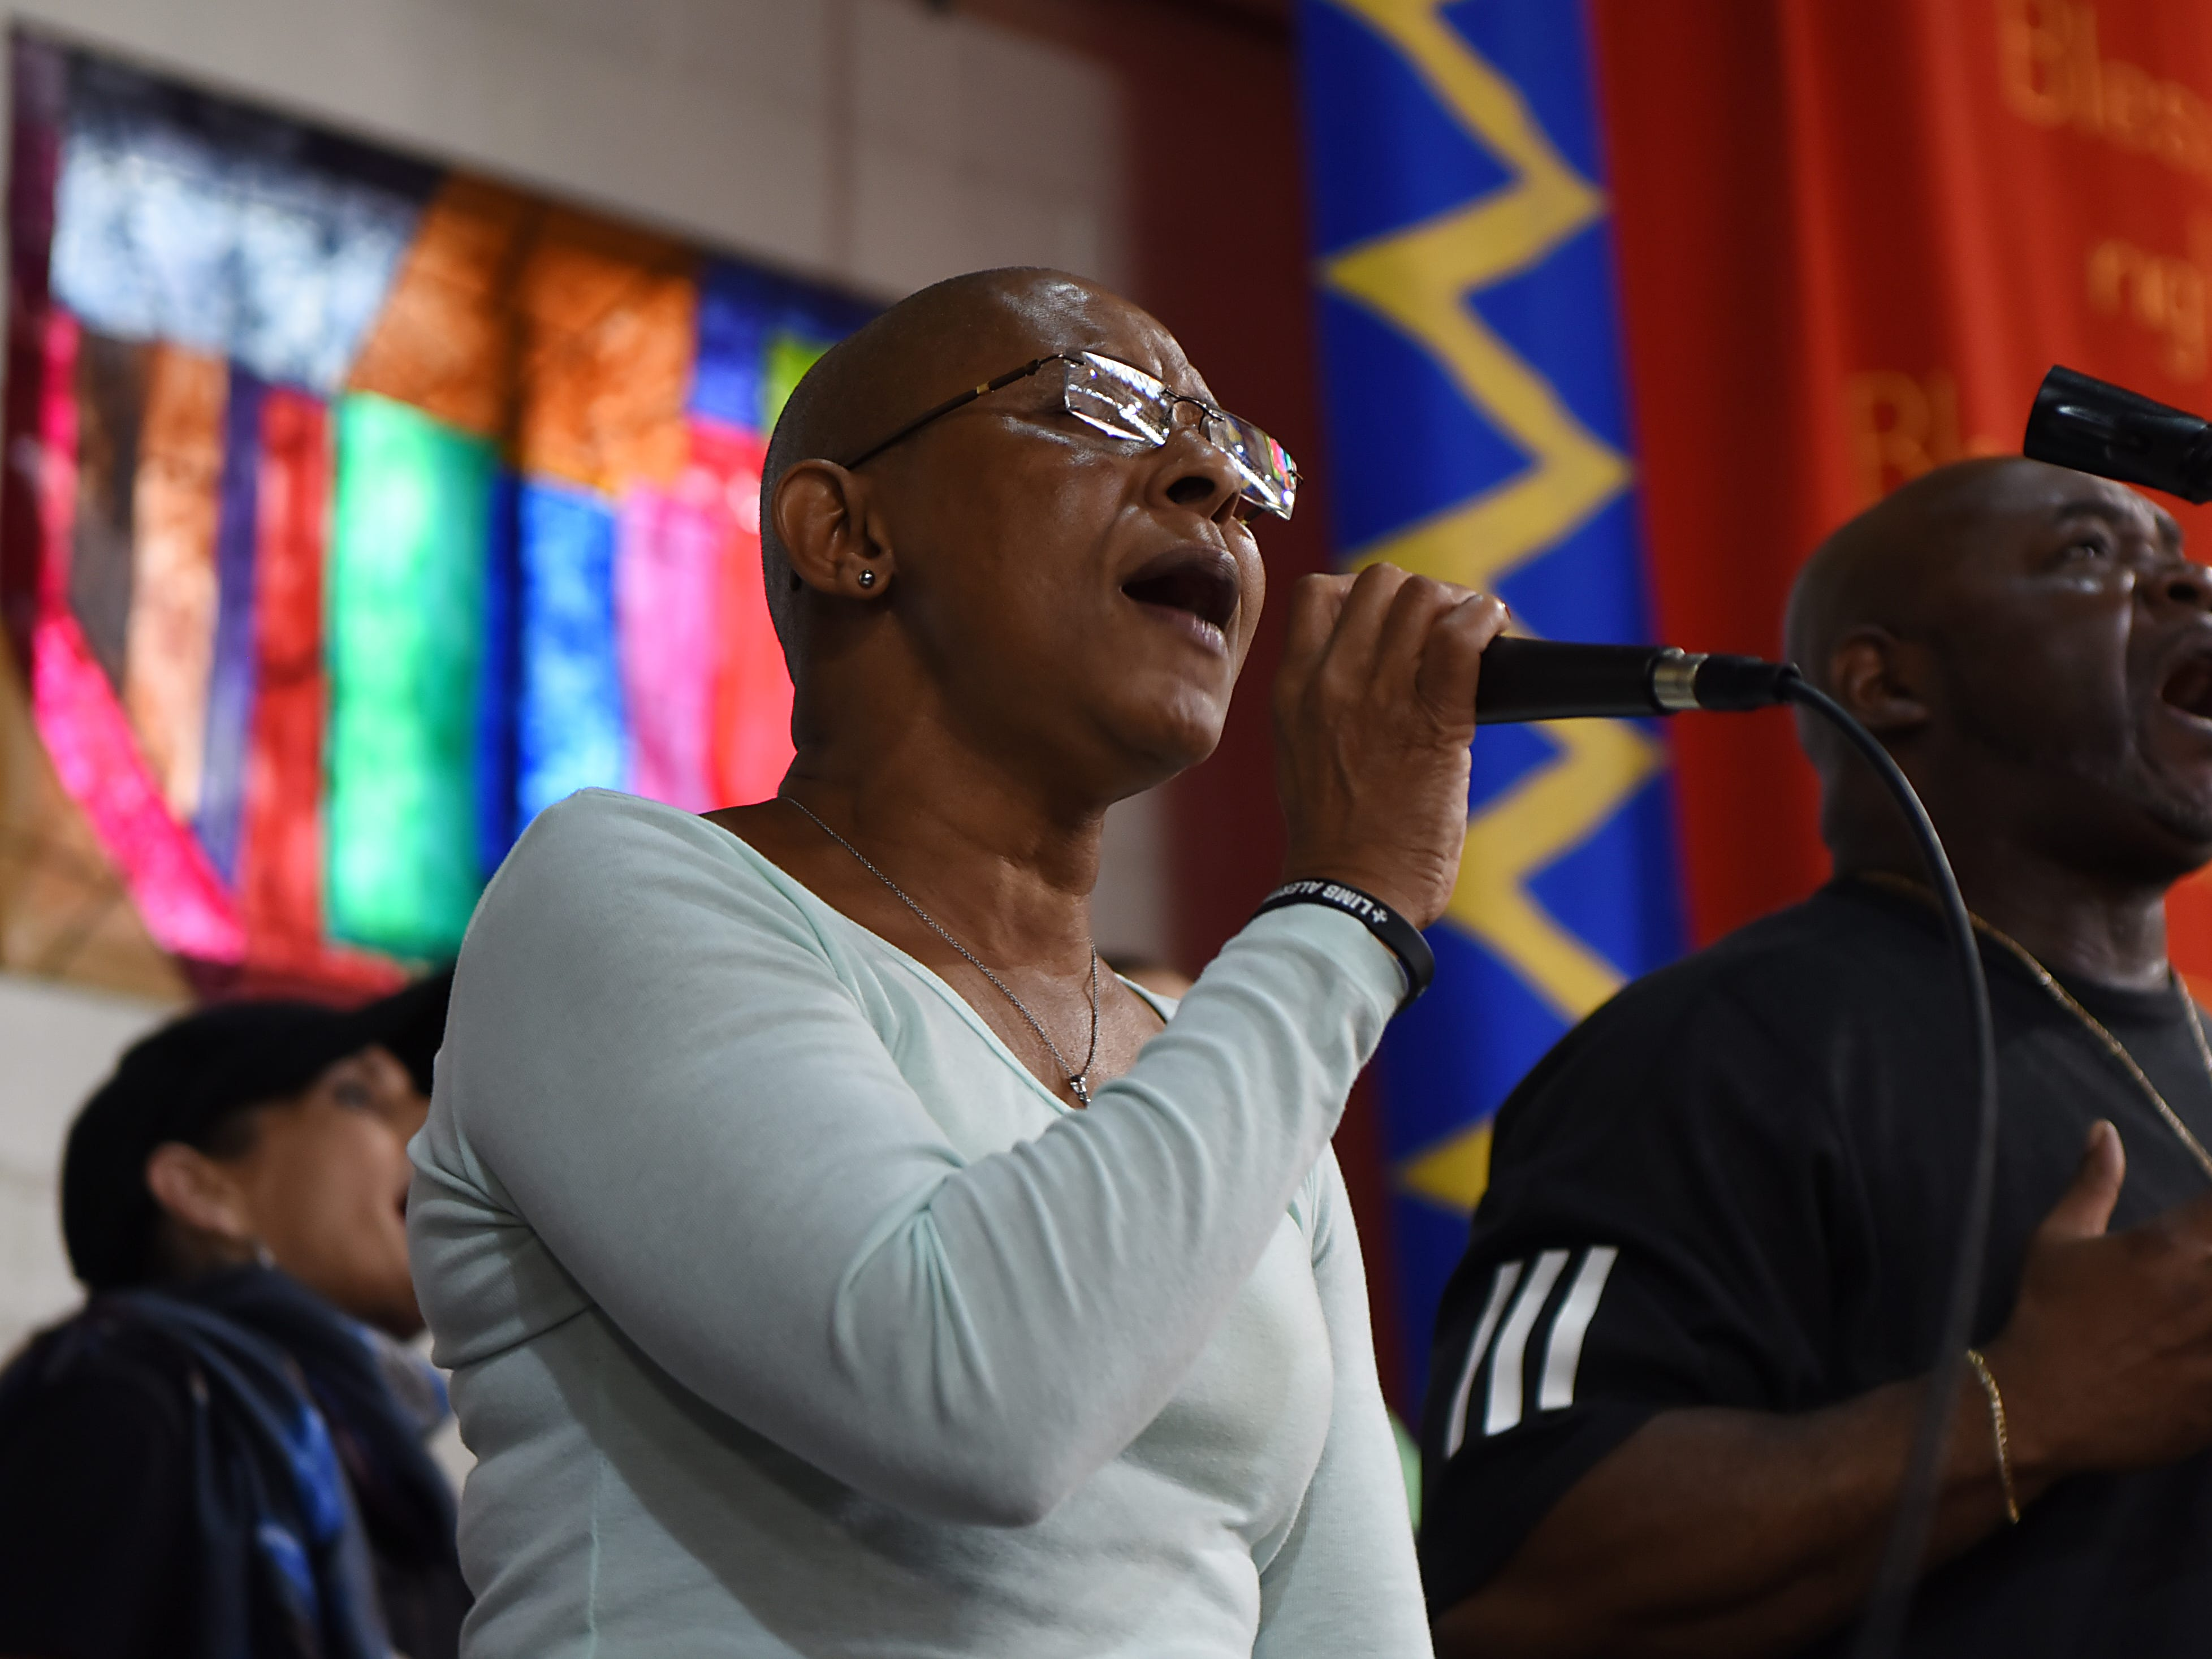 Pat Solomon, left, and Irv DeBois, singers in the Straight & Narrow Gospel Choir, practice in the organization's great hall in Paterson on Saturday, Oct. 13, 2018.